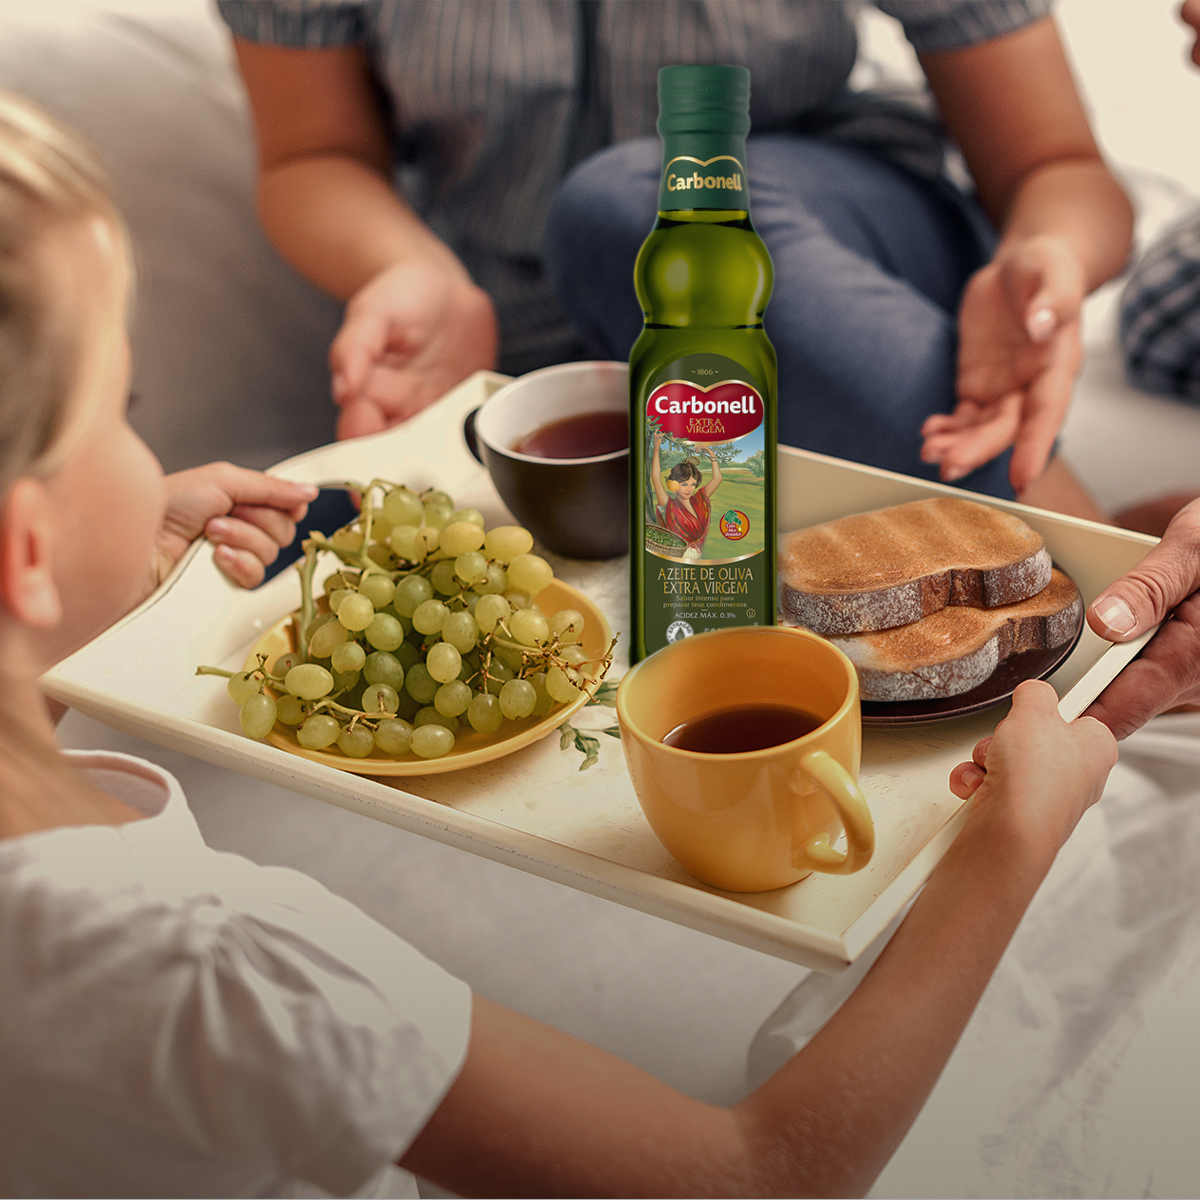 Sharing a healthy meal is a way to care about those we truly love. #Carbonell #LoveIsHomeMade #Foodie #goodmorningfriday #comfortfood #familyday #lovelifelive #thankful<br>http://pic.twitter.com/L7IuXaCZwv